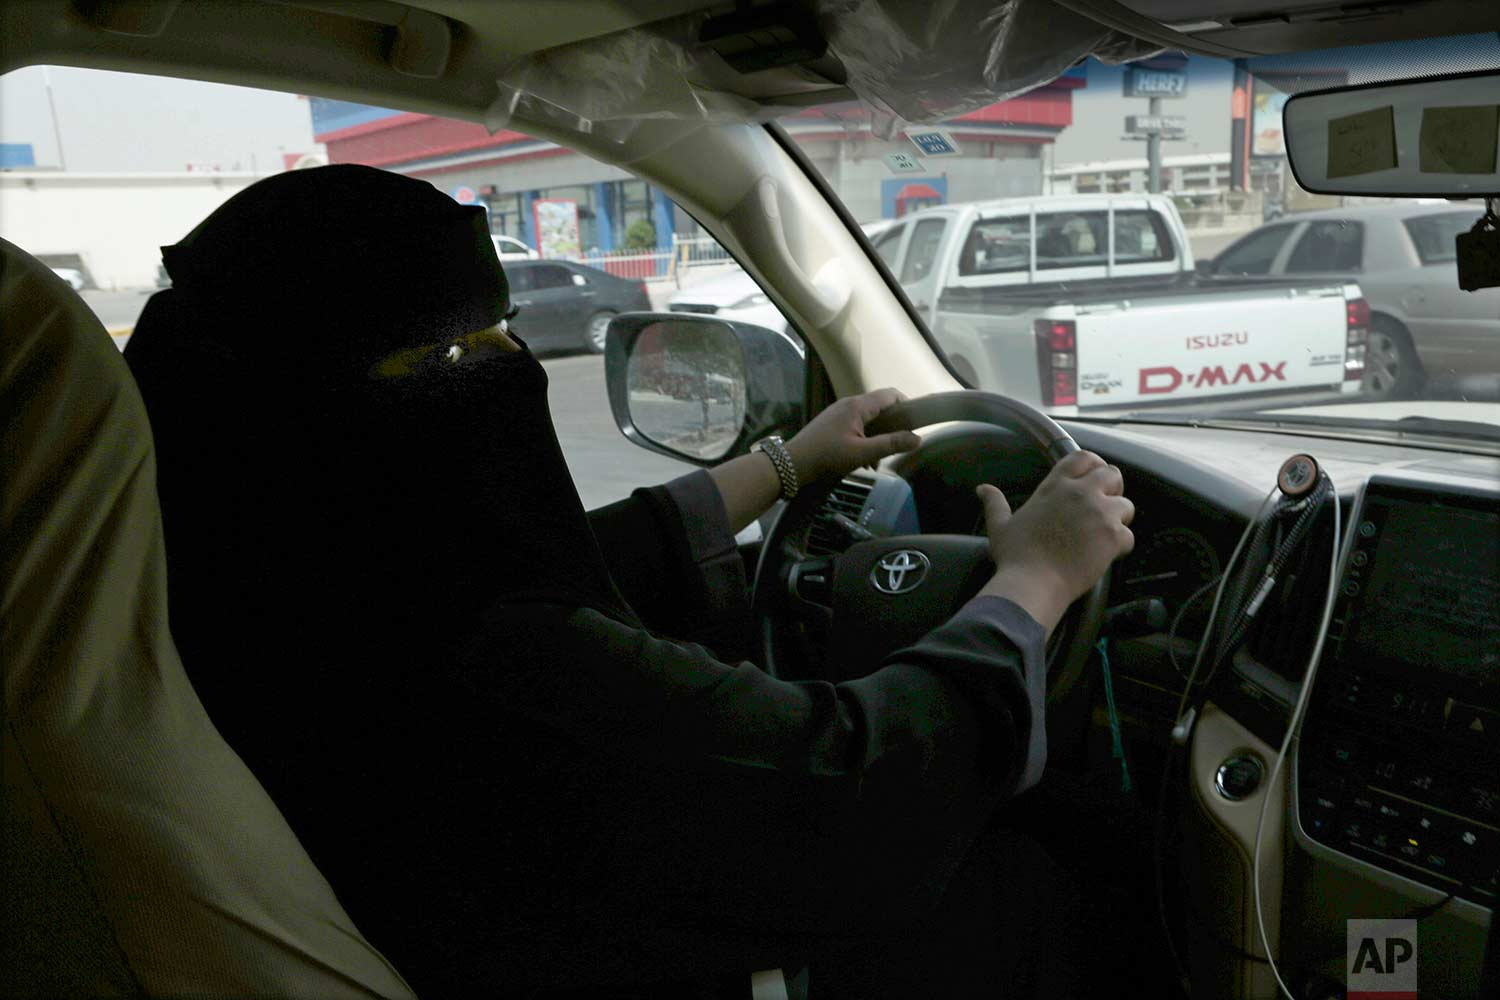 """Mabkhoutah al-Mari drives to work for the first time in Riyadh, Saudi Arabia, Sunday, June 24, 2018. """"It feels beautiful. It was a dream for us so when it happens in reality, I am between belief and disbelief -- between a feeling of joy and astonishment,"""" said Mari as she pulled up to order a drive-thru coffee on her way to work. (AP Photo/Nariman El-Mofty)"""